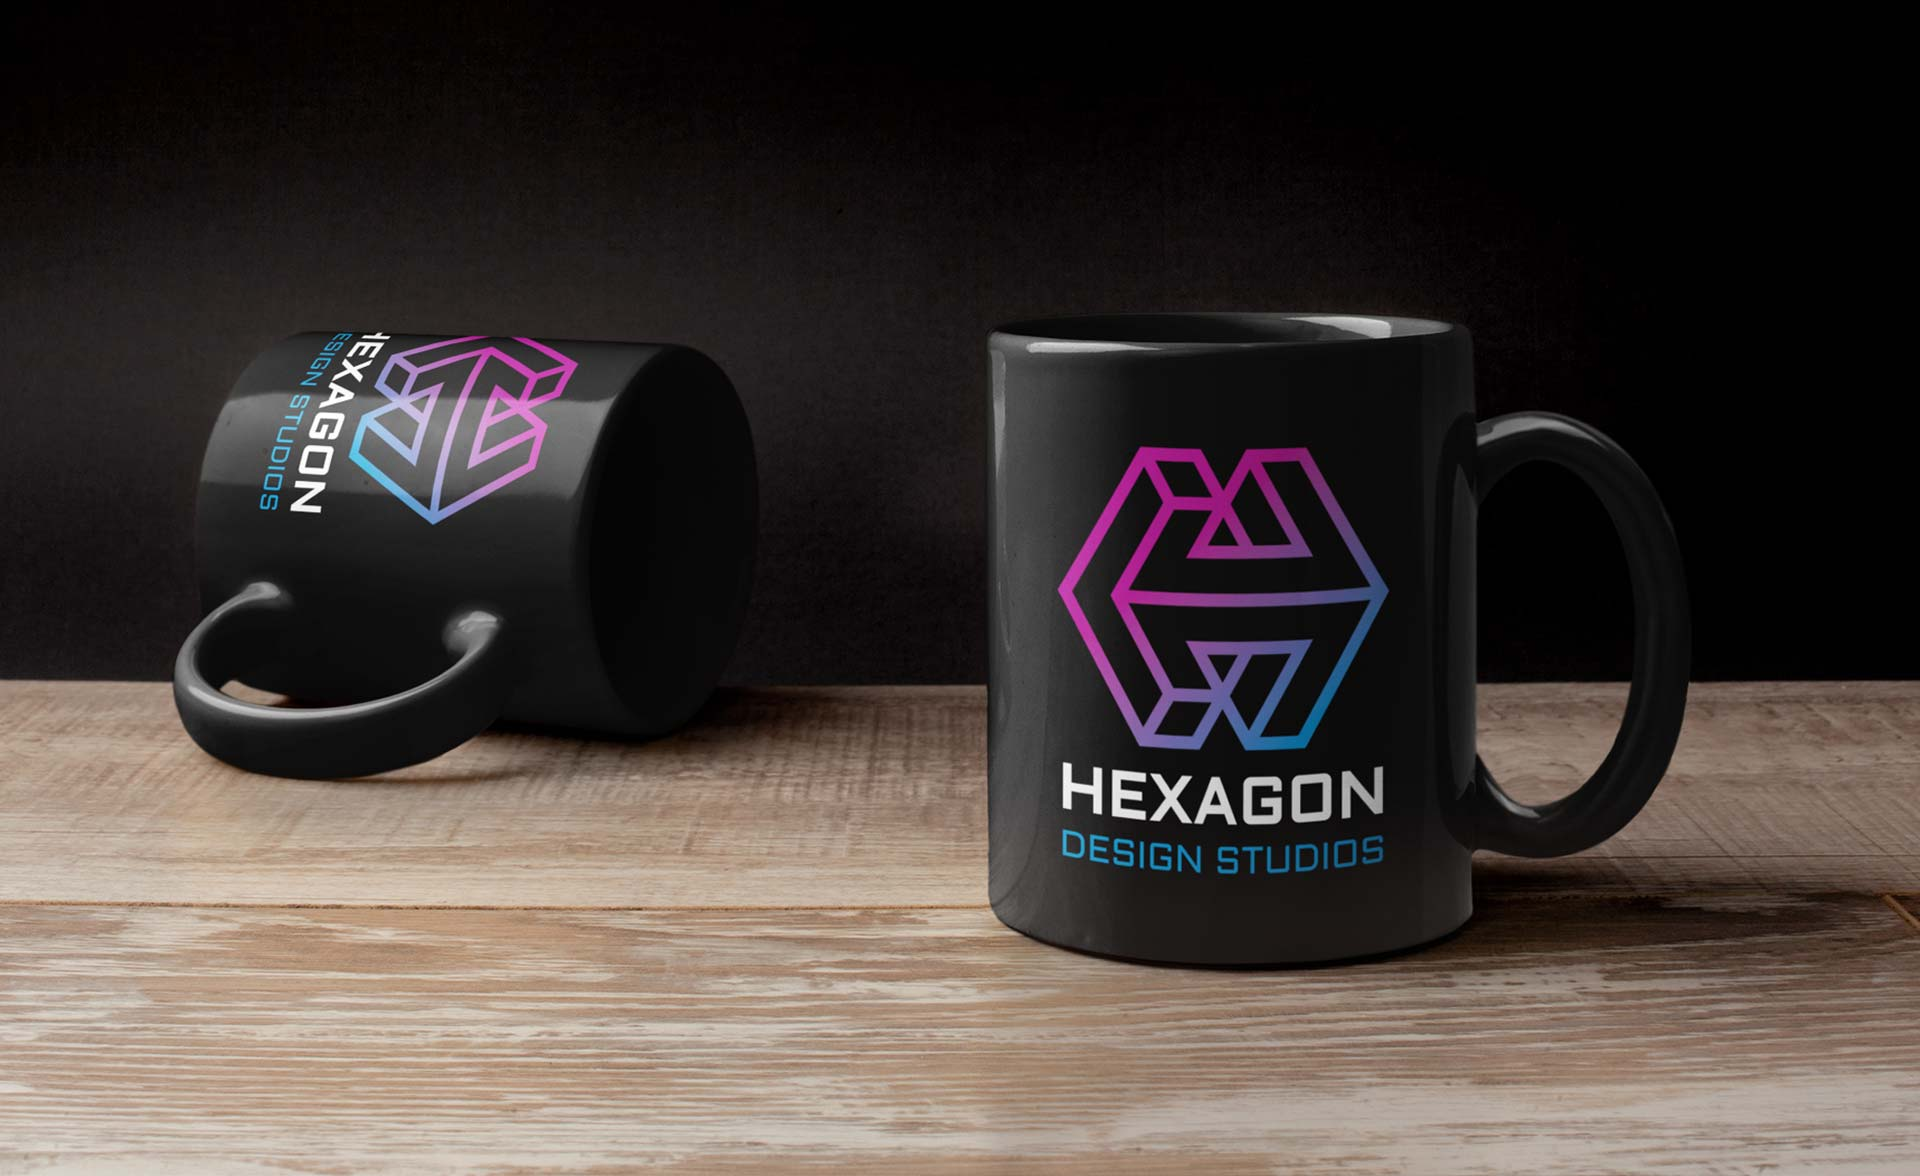 Hexagon Design Studios New Logo on Mug